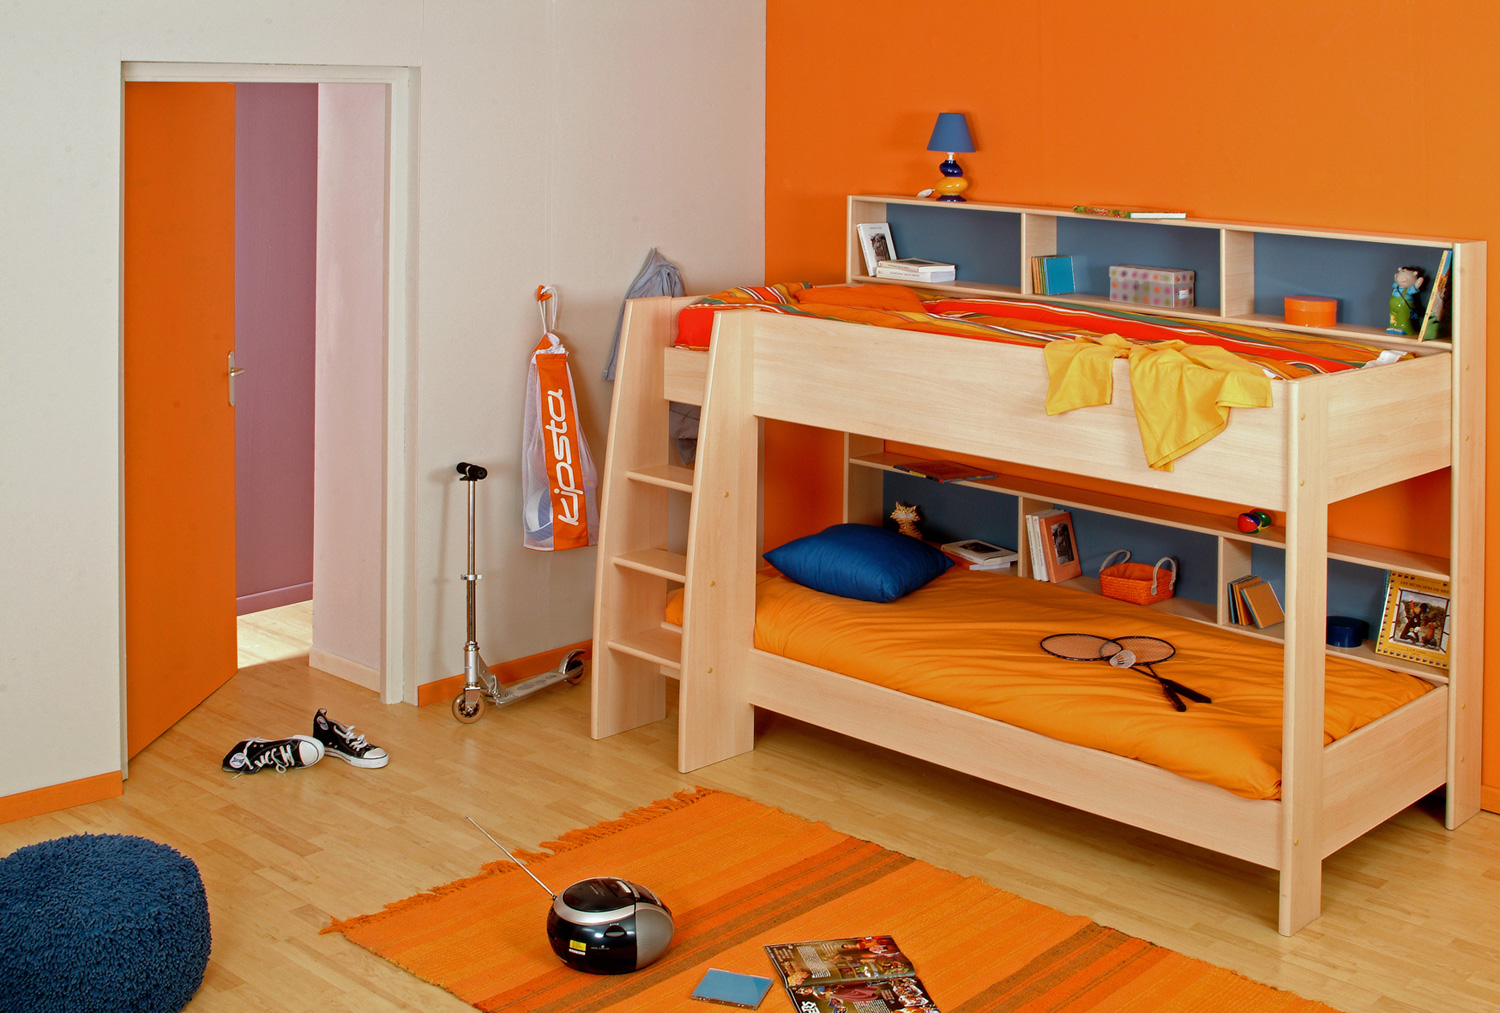 18 bunk bed bedroom designs decorating ideas design for Kids bed design